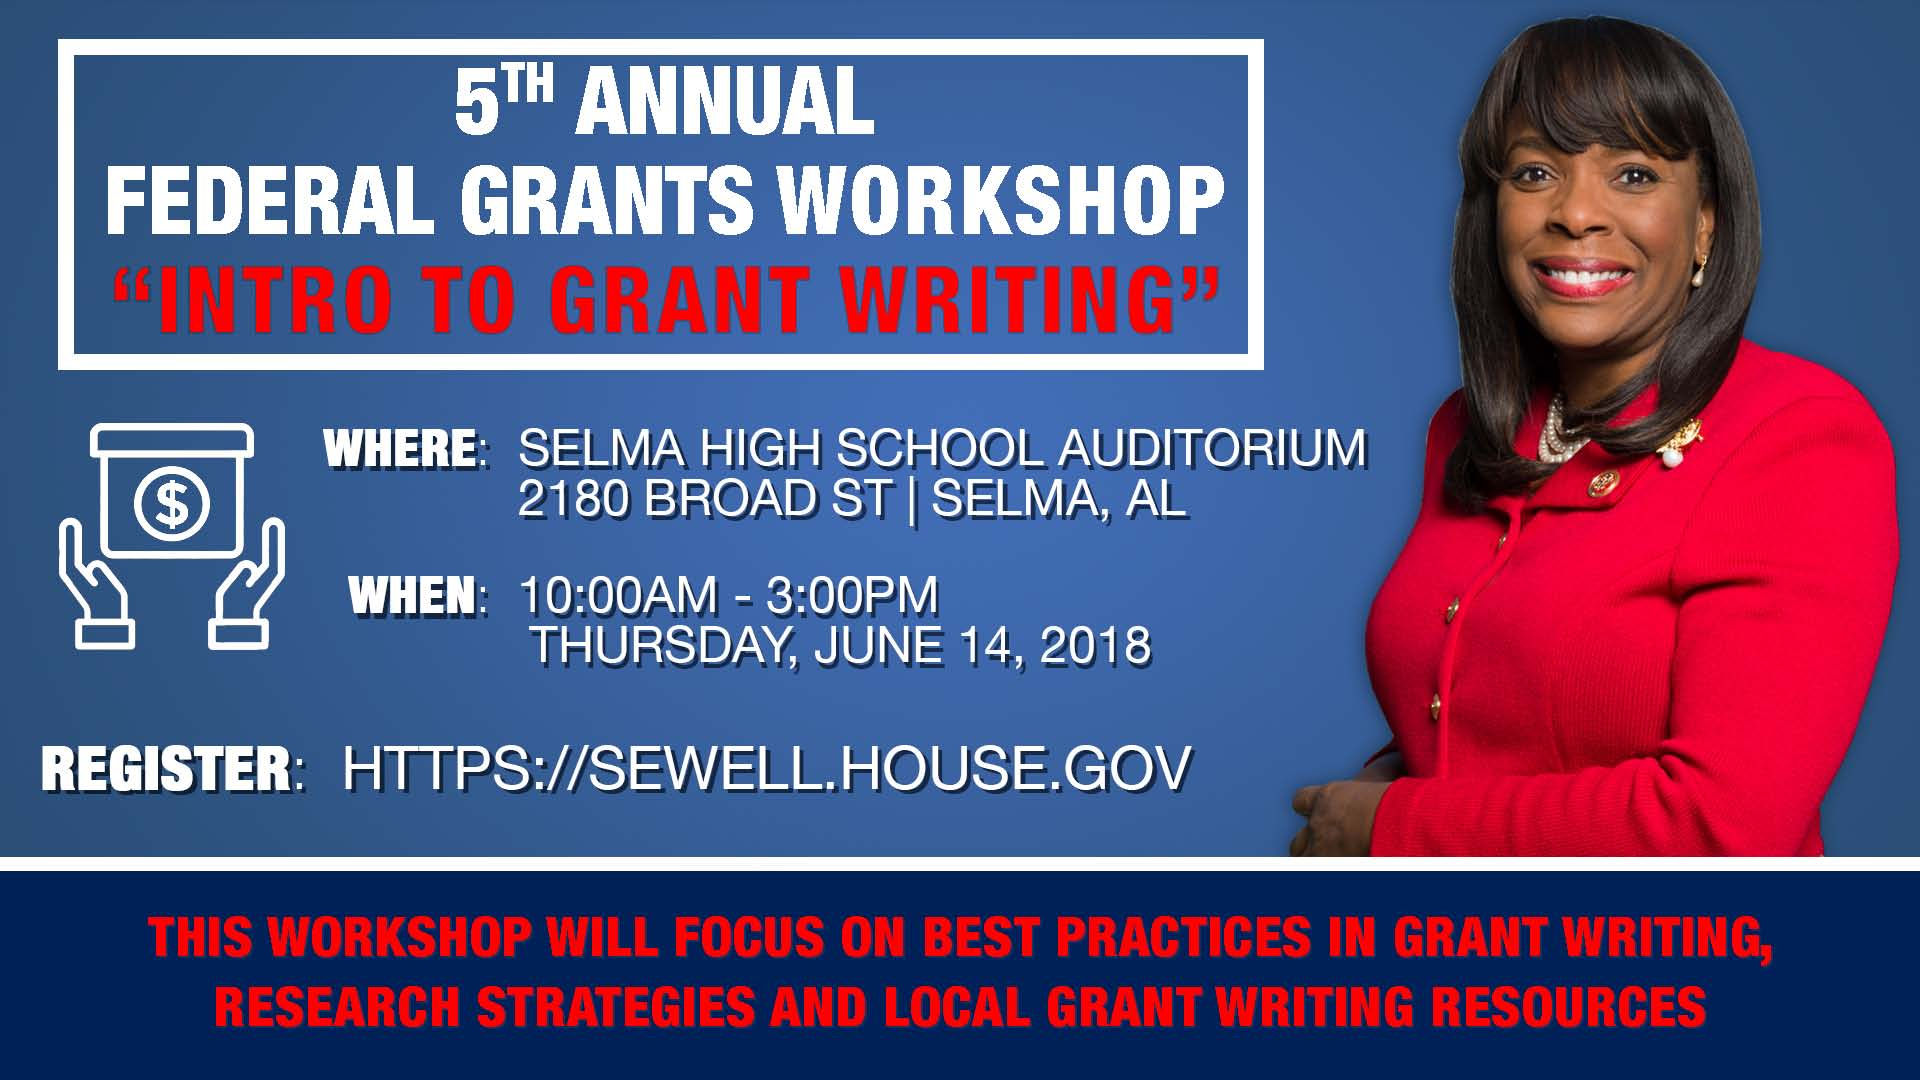 Federal Grants Workshop Grant Writing 101 Selma High School 6.14.1